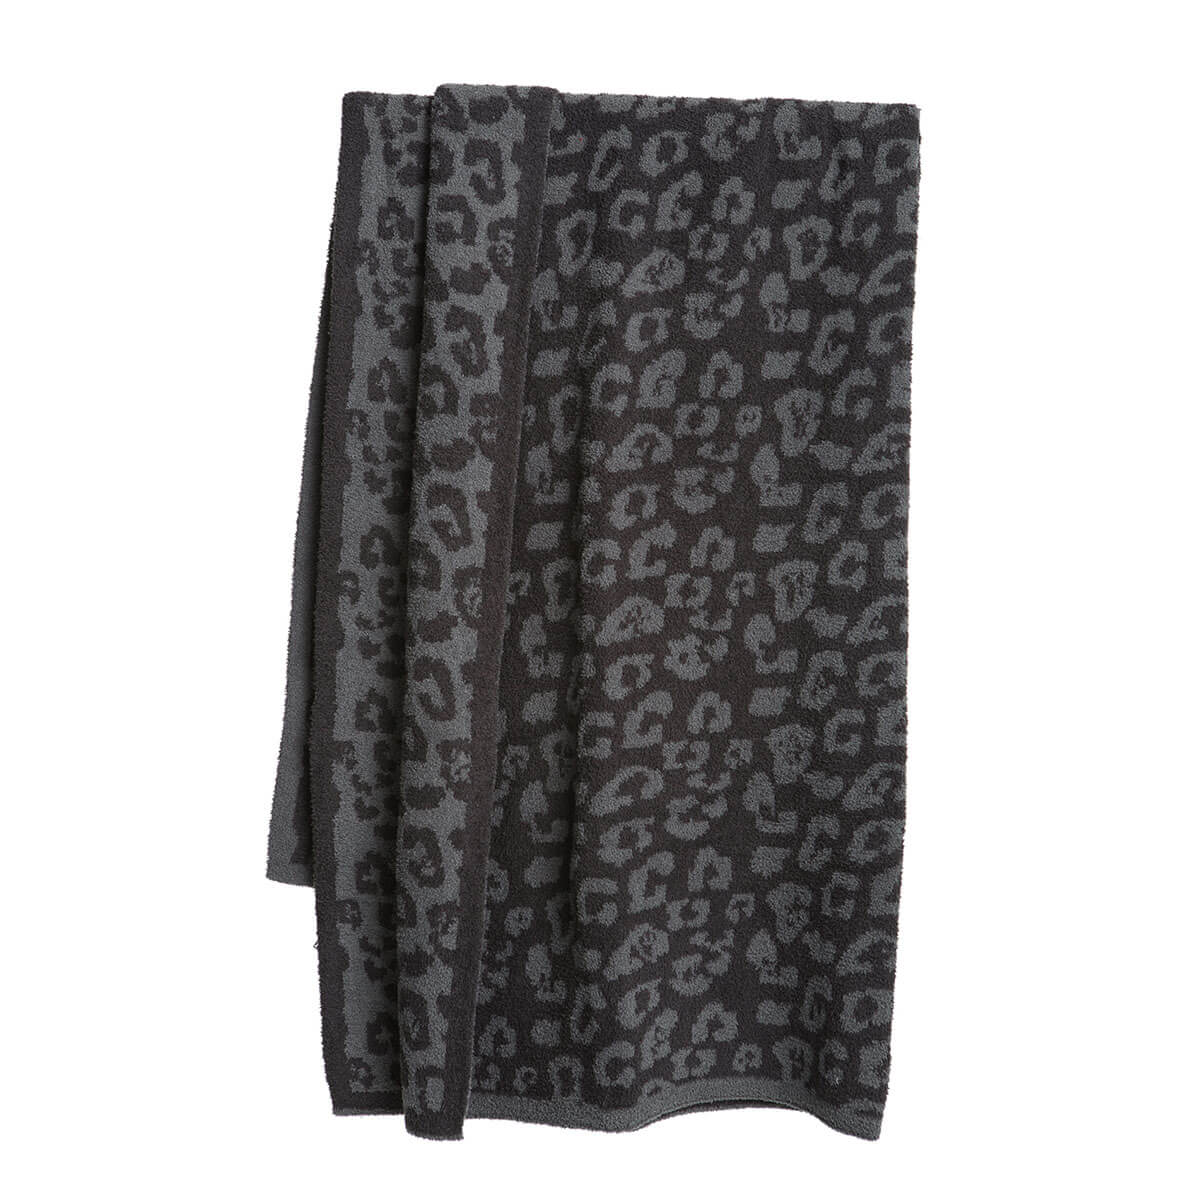 Barefoot Dreams CozyChic Barefoot In The Wild Adult Throw